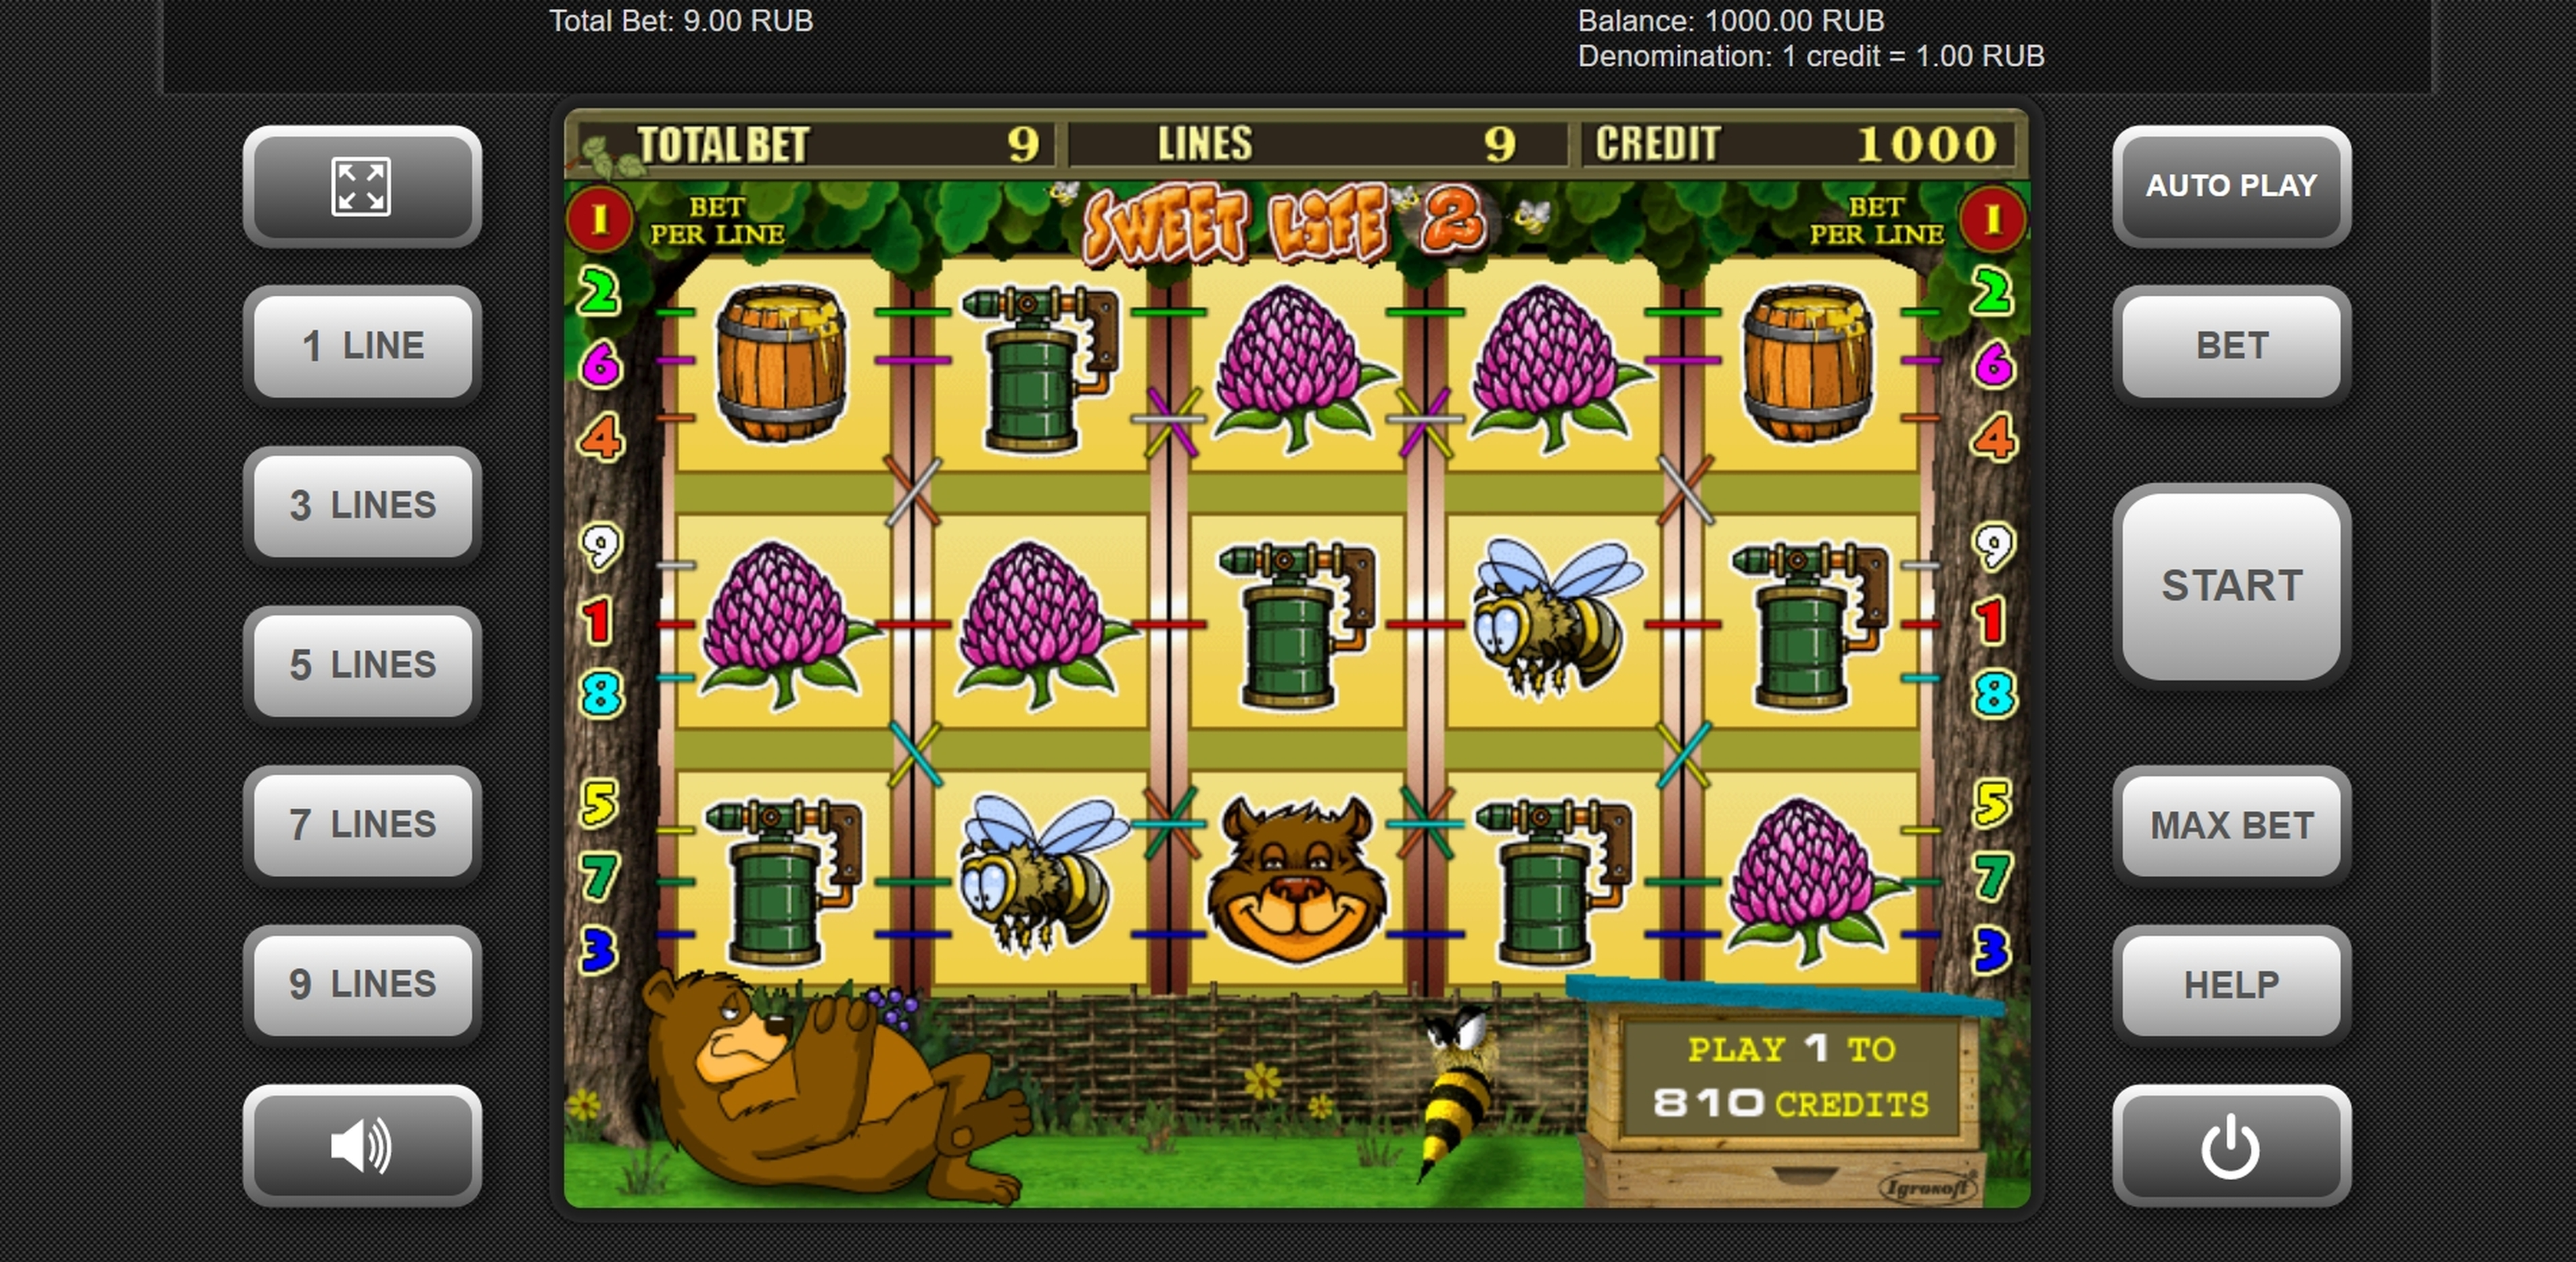 Reels in Sweet Life 2 Slot Game by Igrosoft